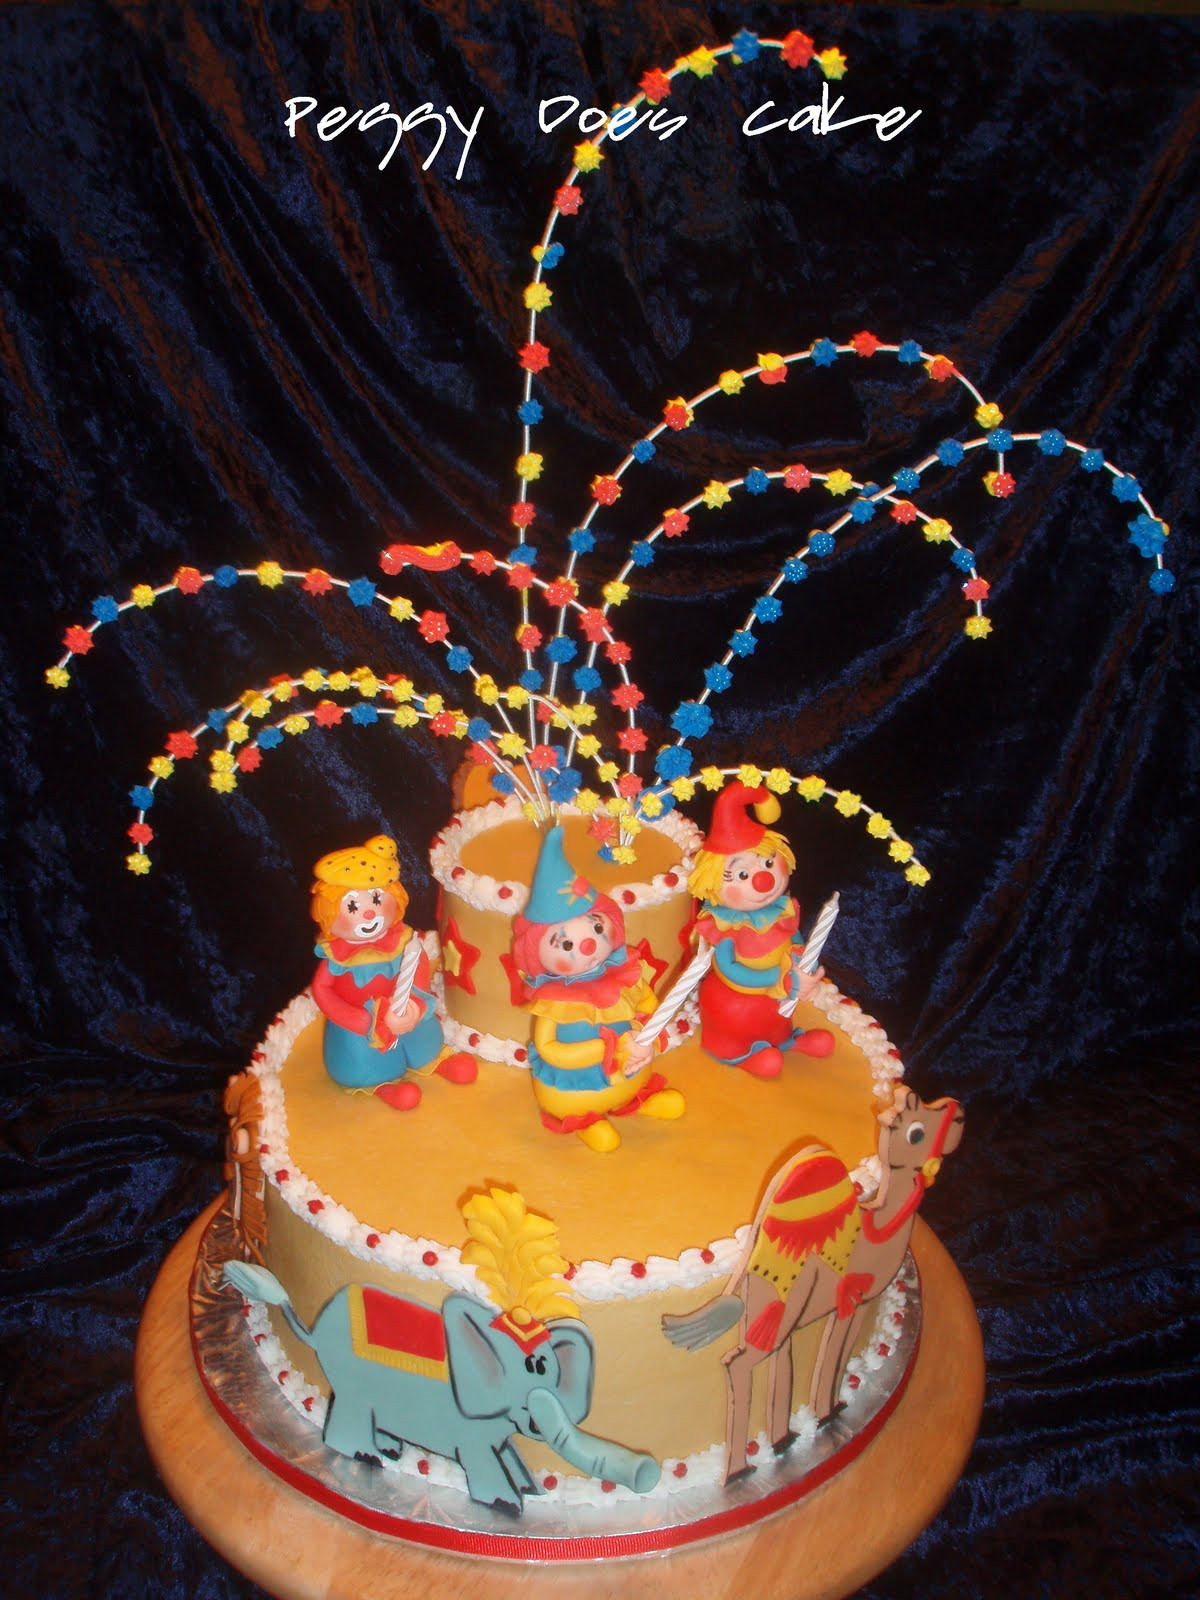 Best ideas about Birthday Party Cake . Save or Pin Peggy Does Cake Rett s Circus Birthday Cake any Now.